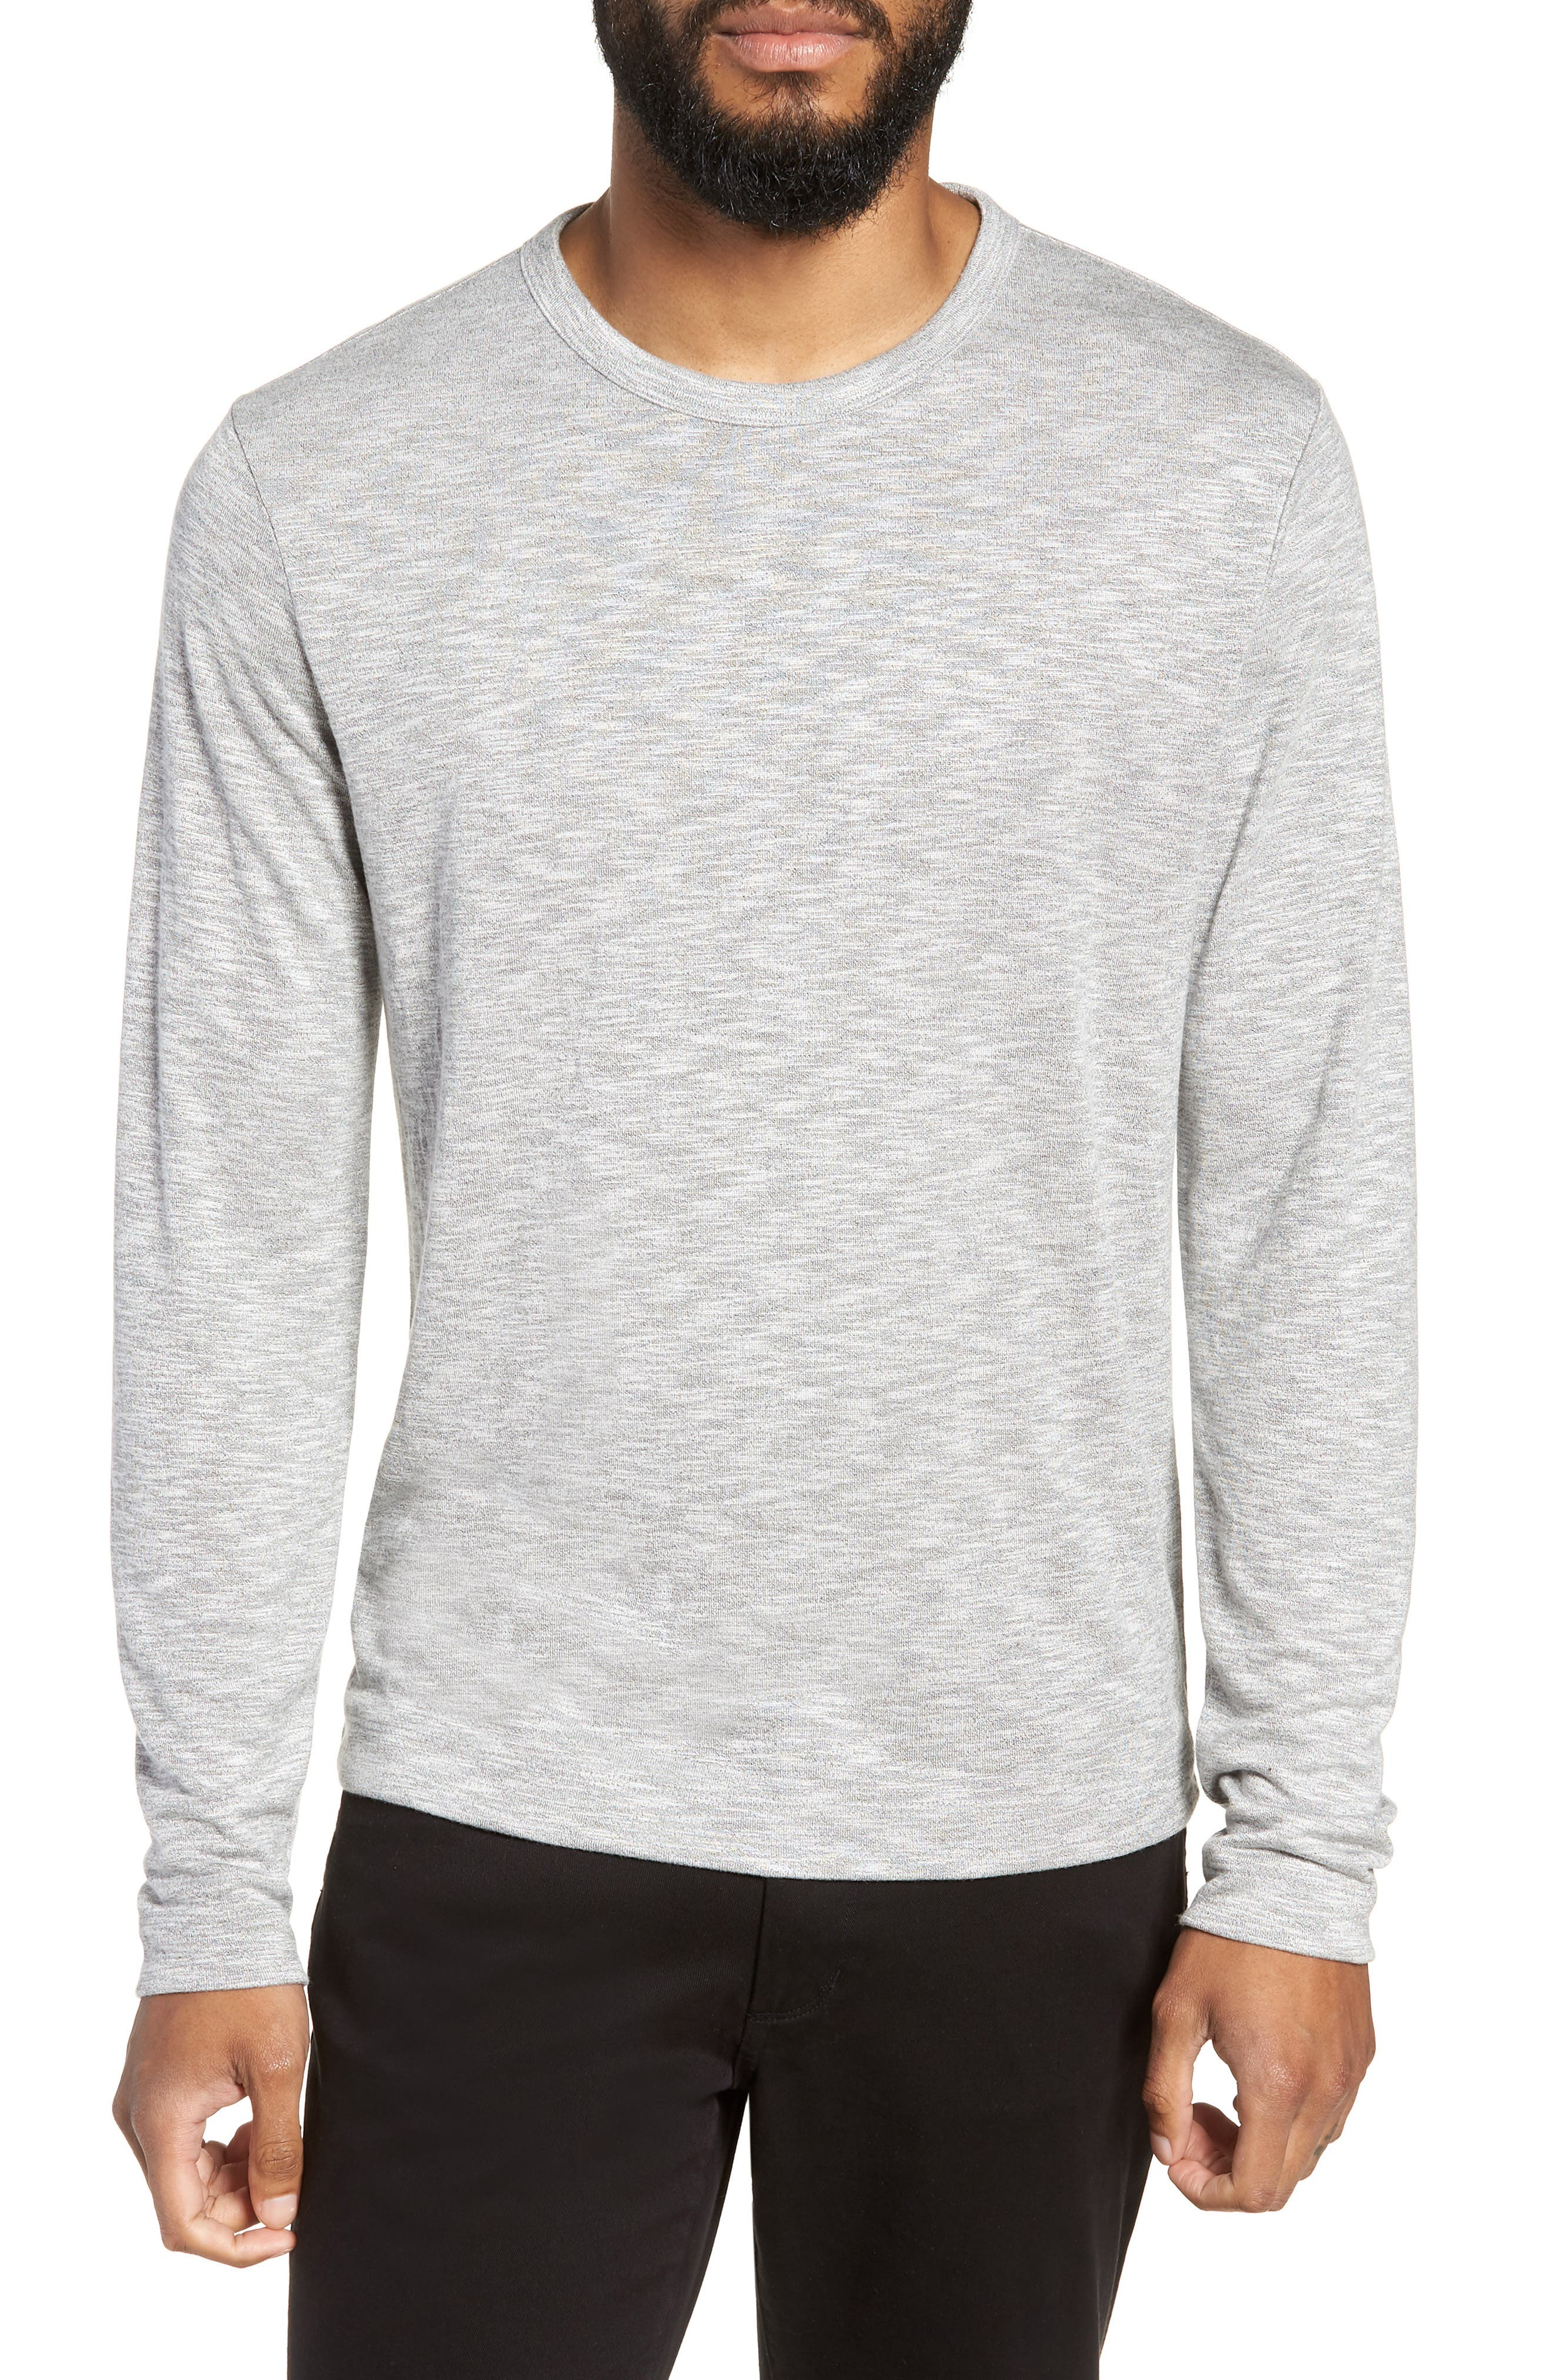 Gaskell Regular Fit Long Sleeve T-Shirt,                         Main,                         color, GREY MULTI